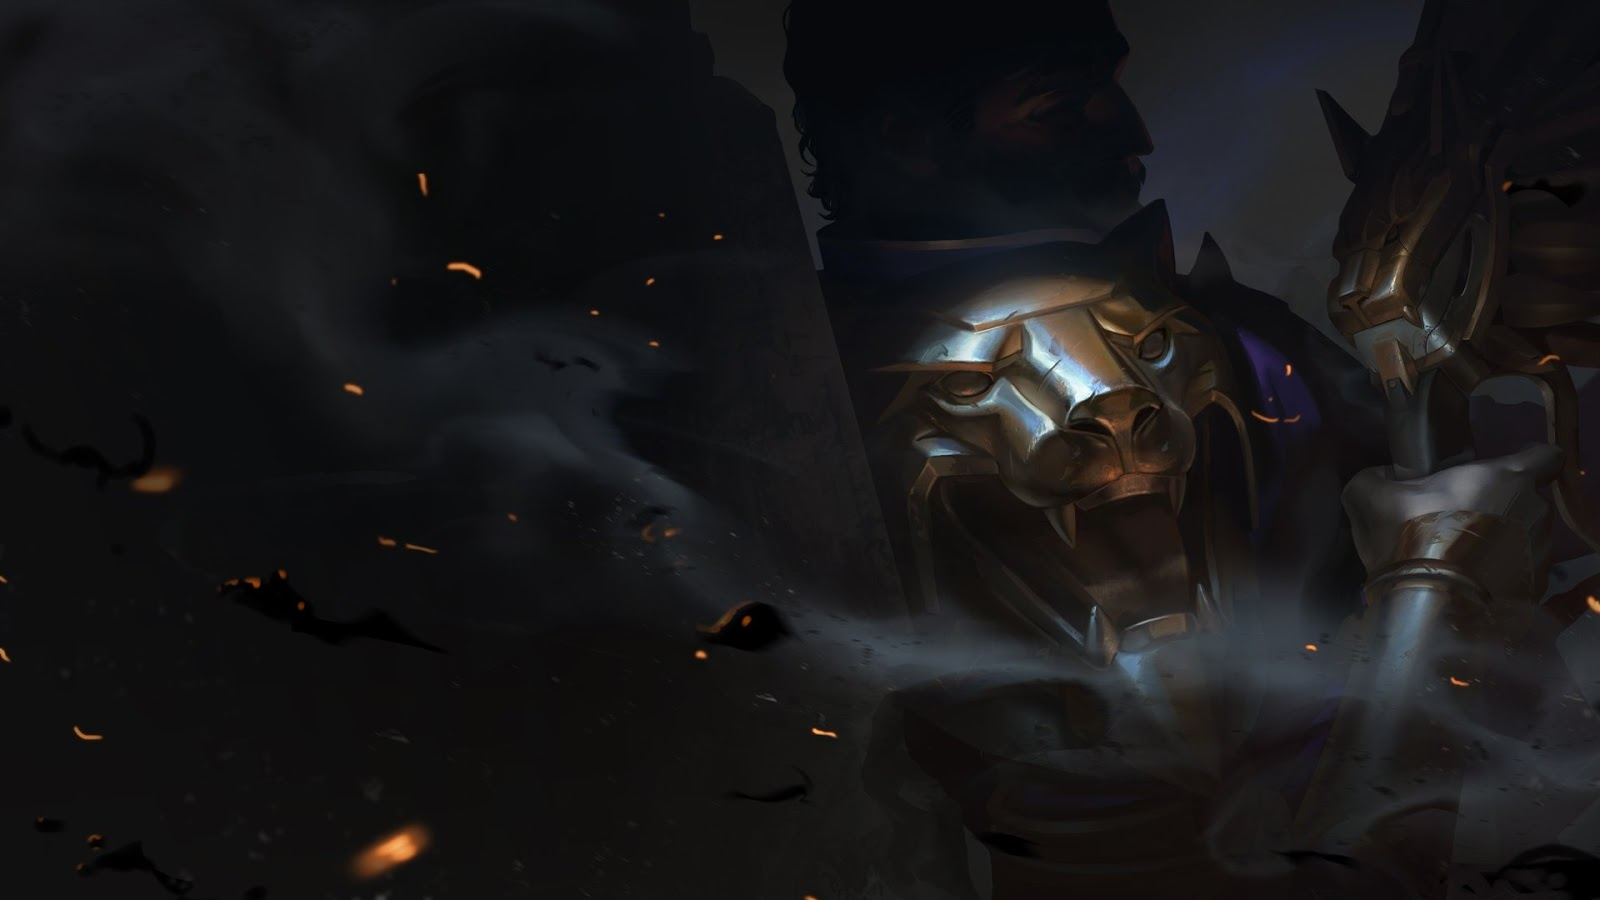 Riot announced Victorious skin for this season in League of Legends